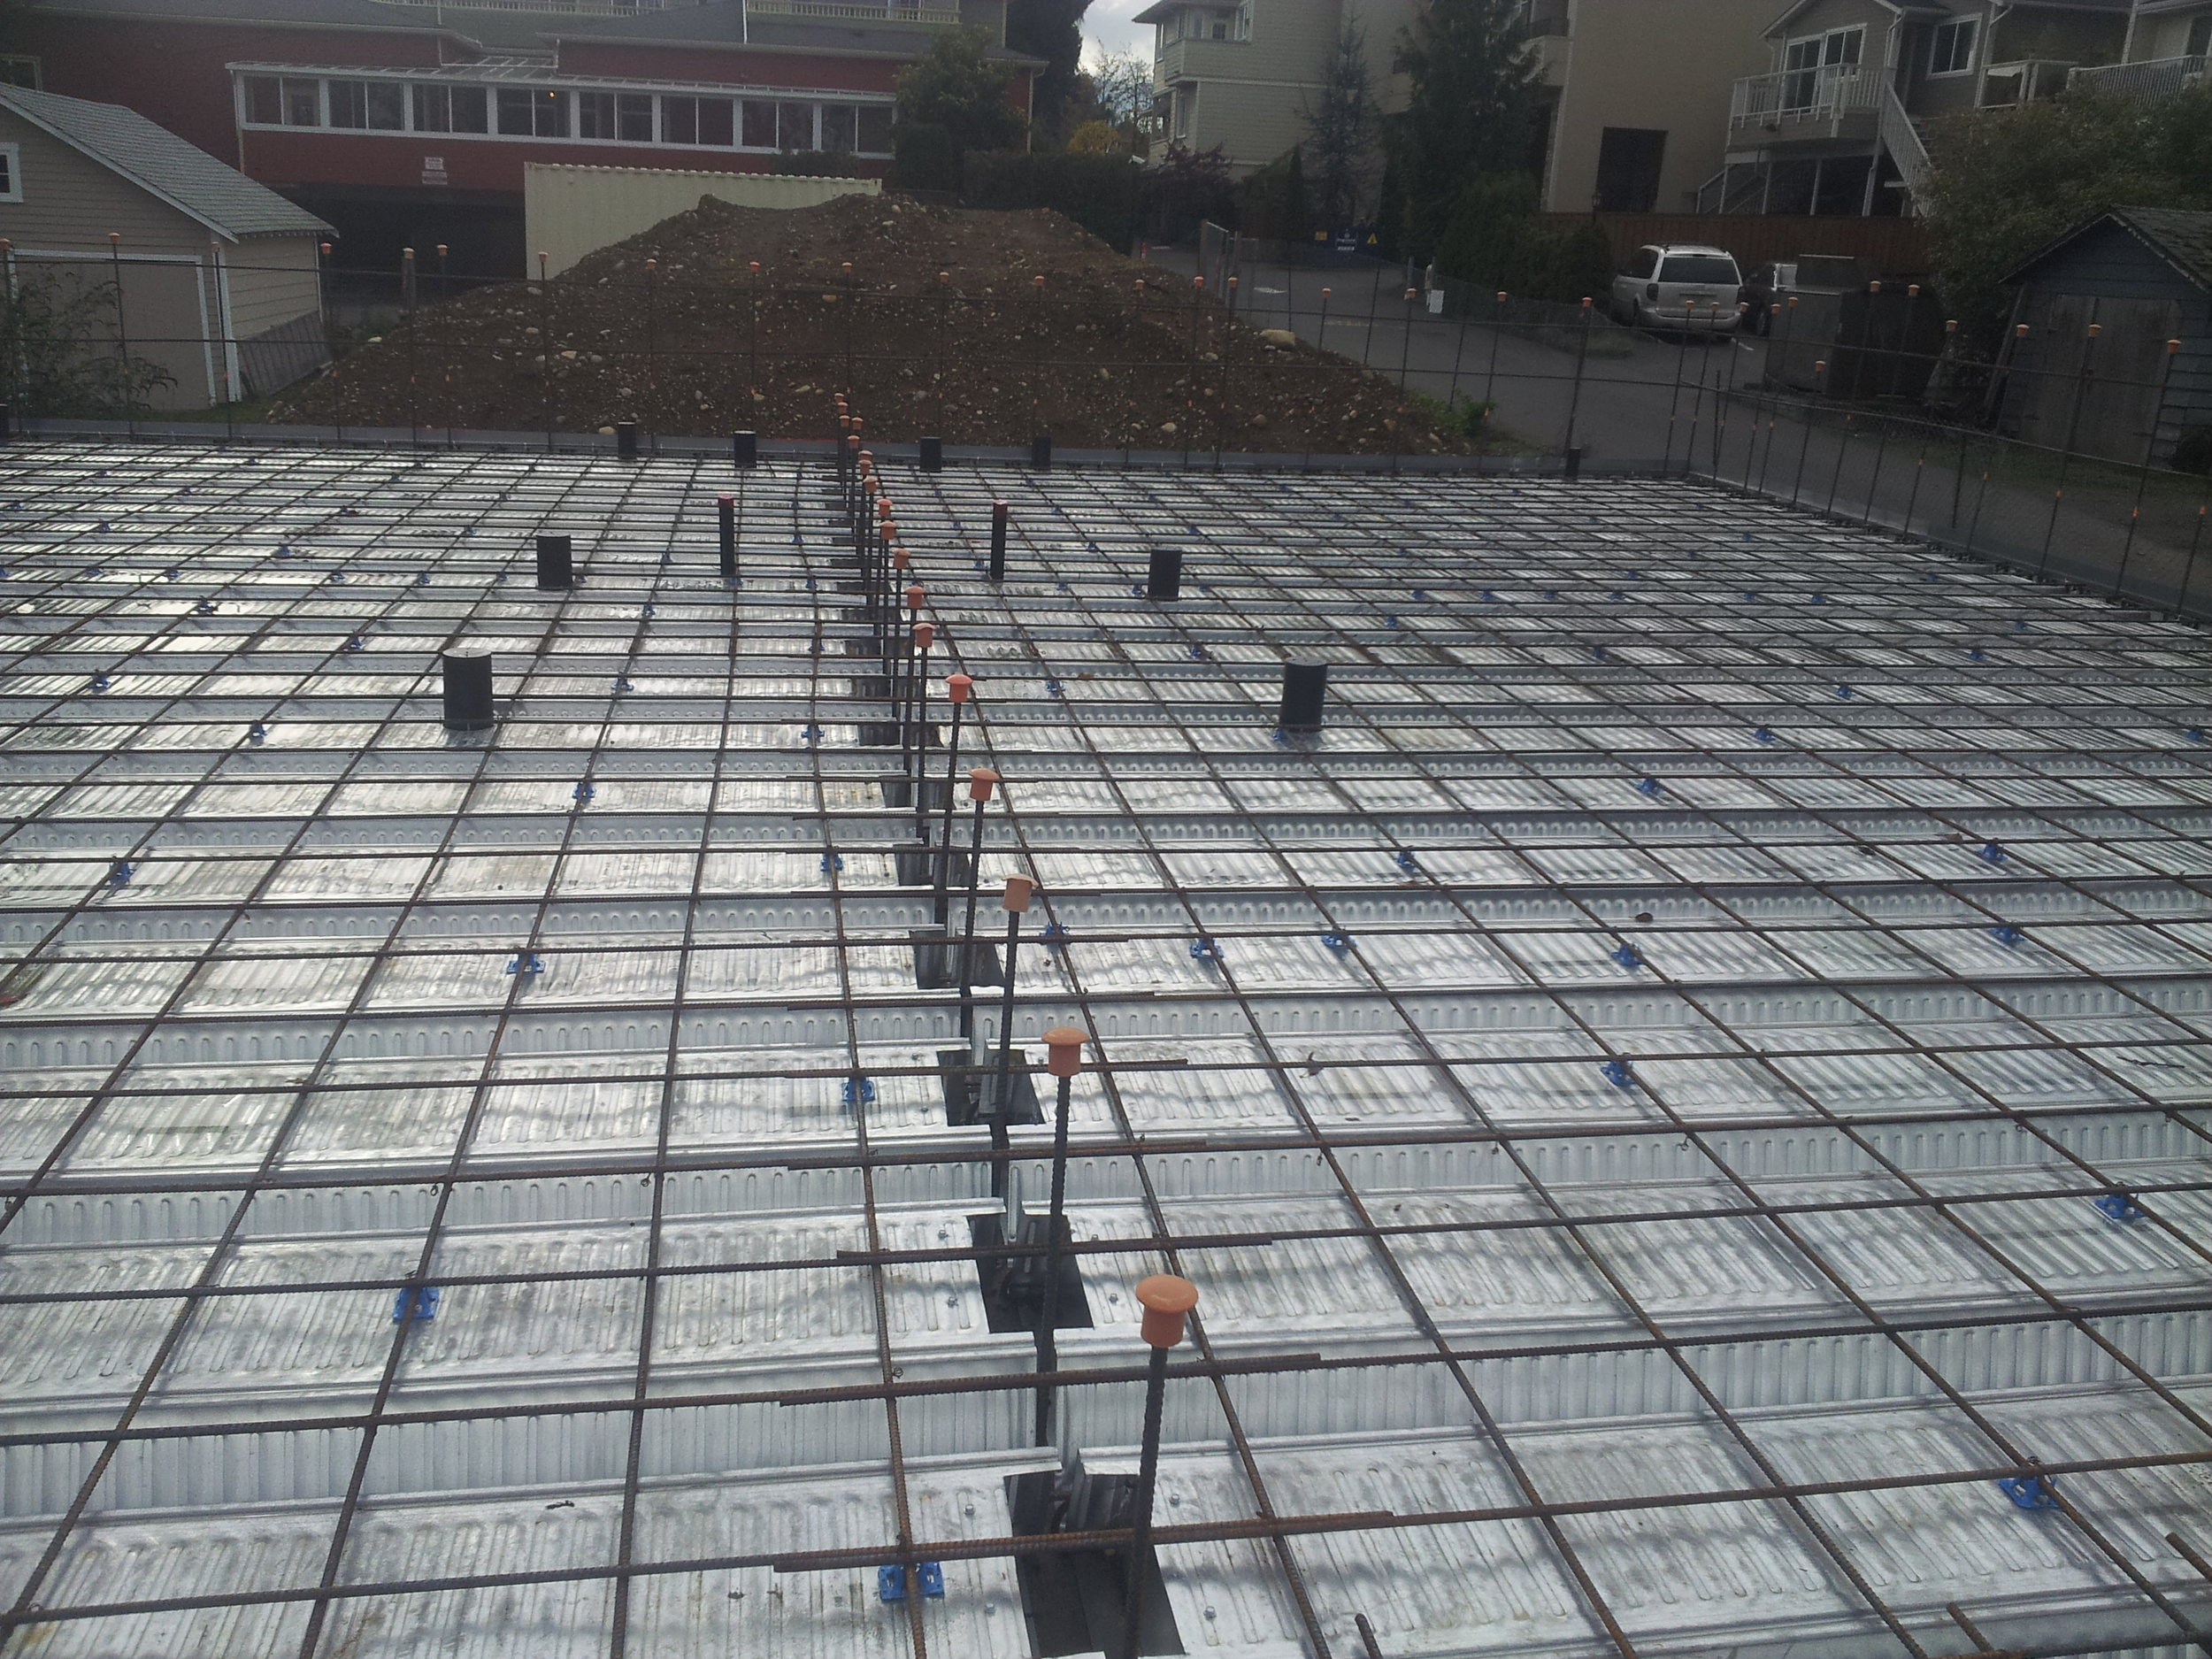 Another picture of the Comslab tray system and the steel rebar reinforcement